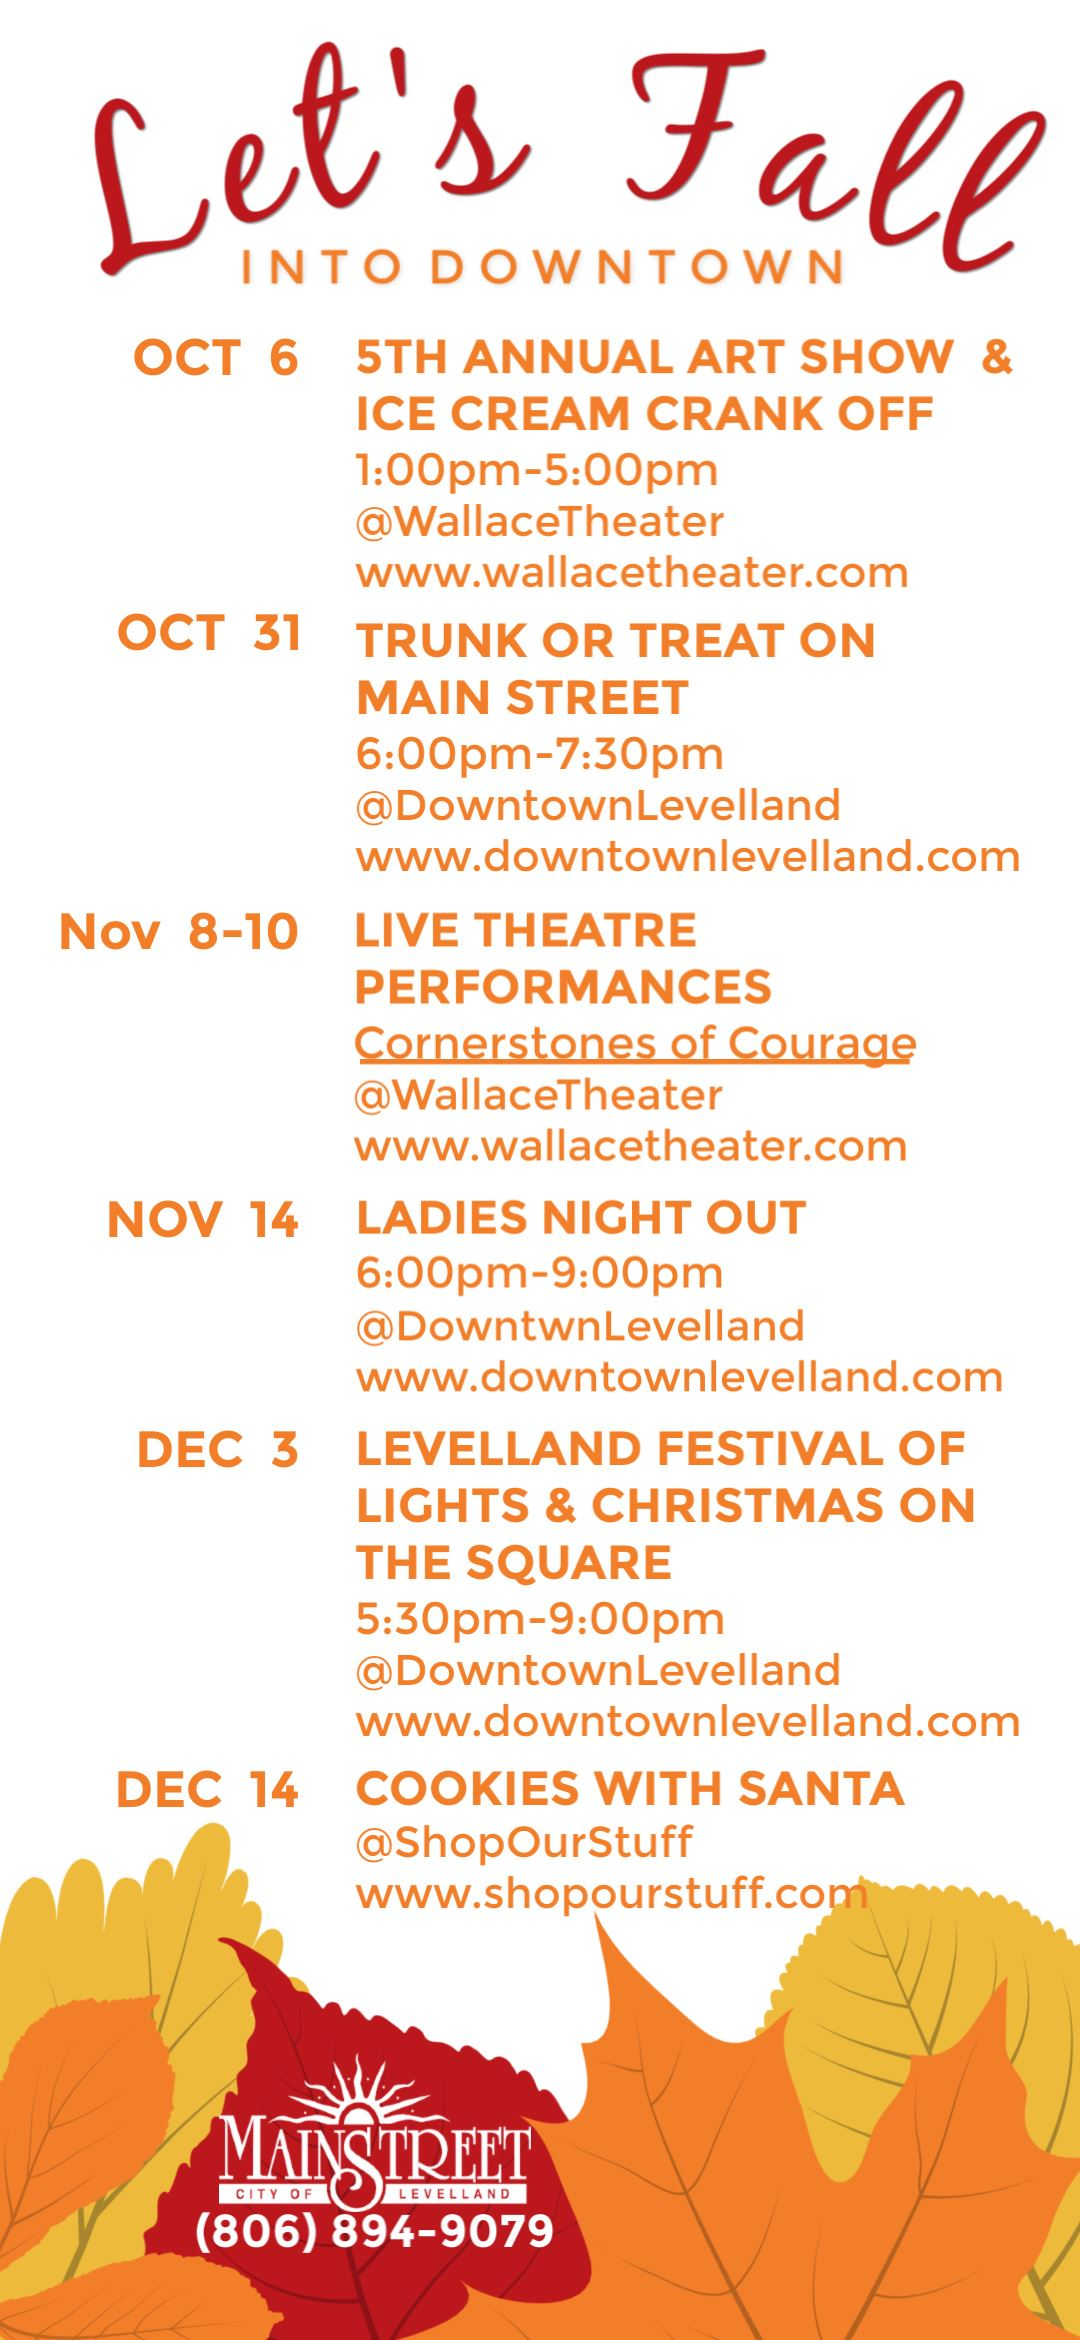 Schedule of 2019 Fall events in downtown Levelland